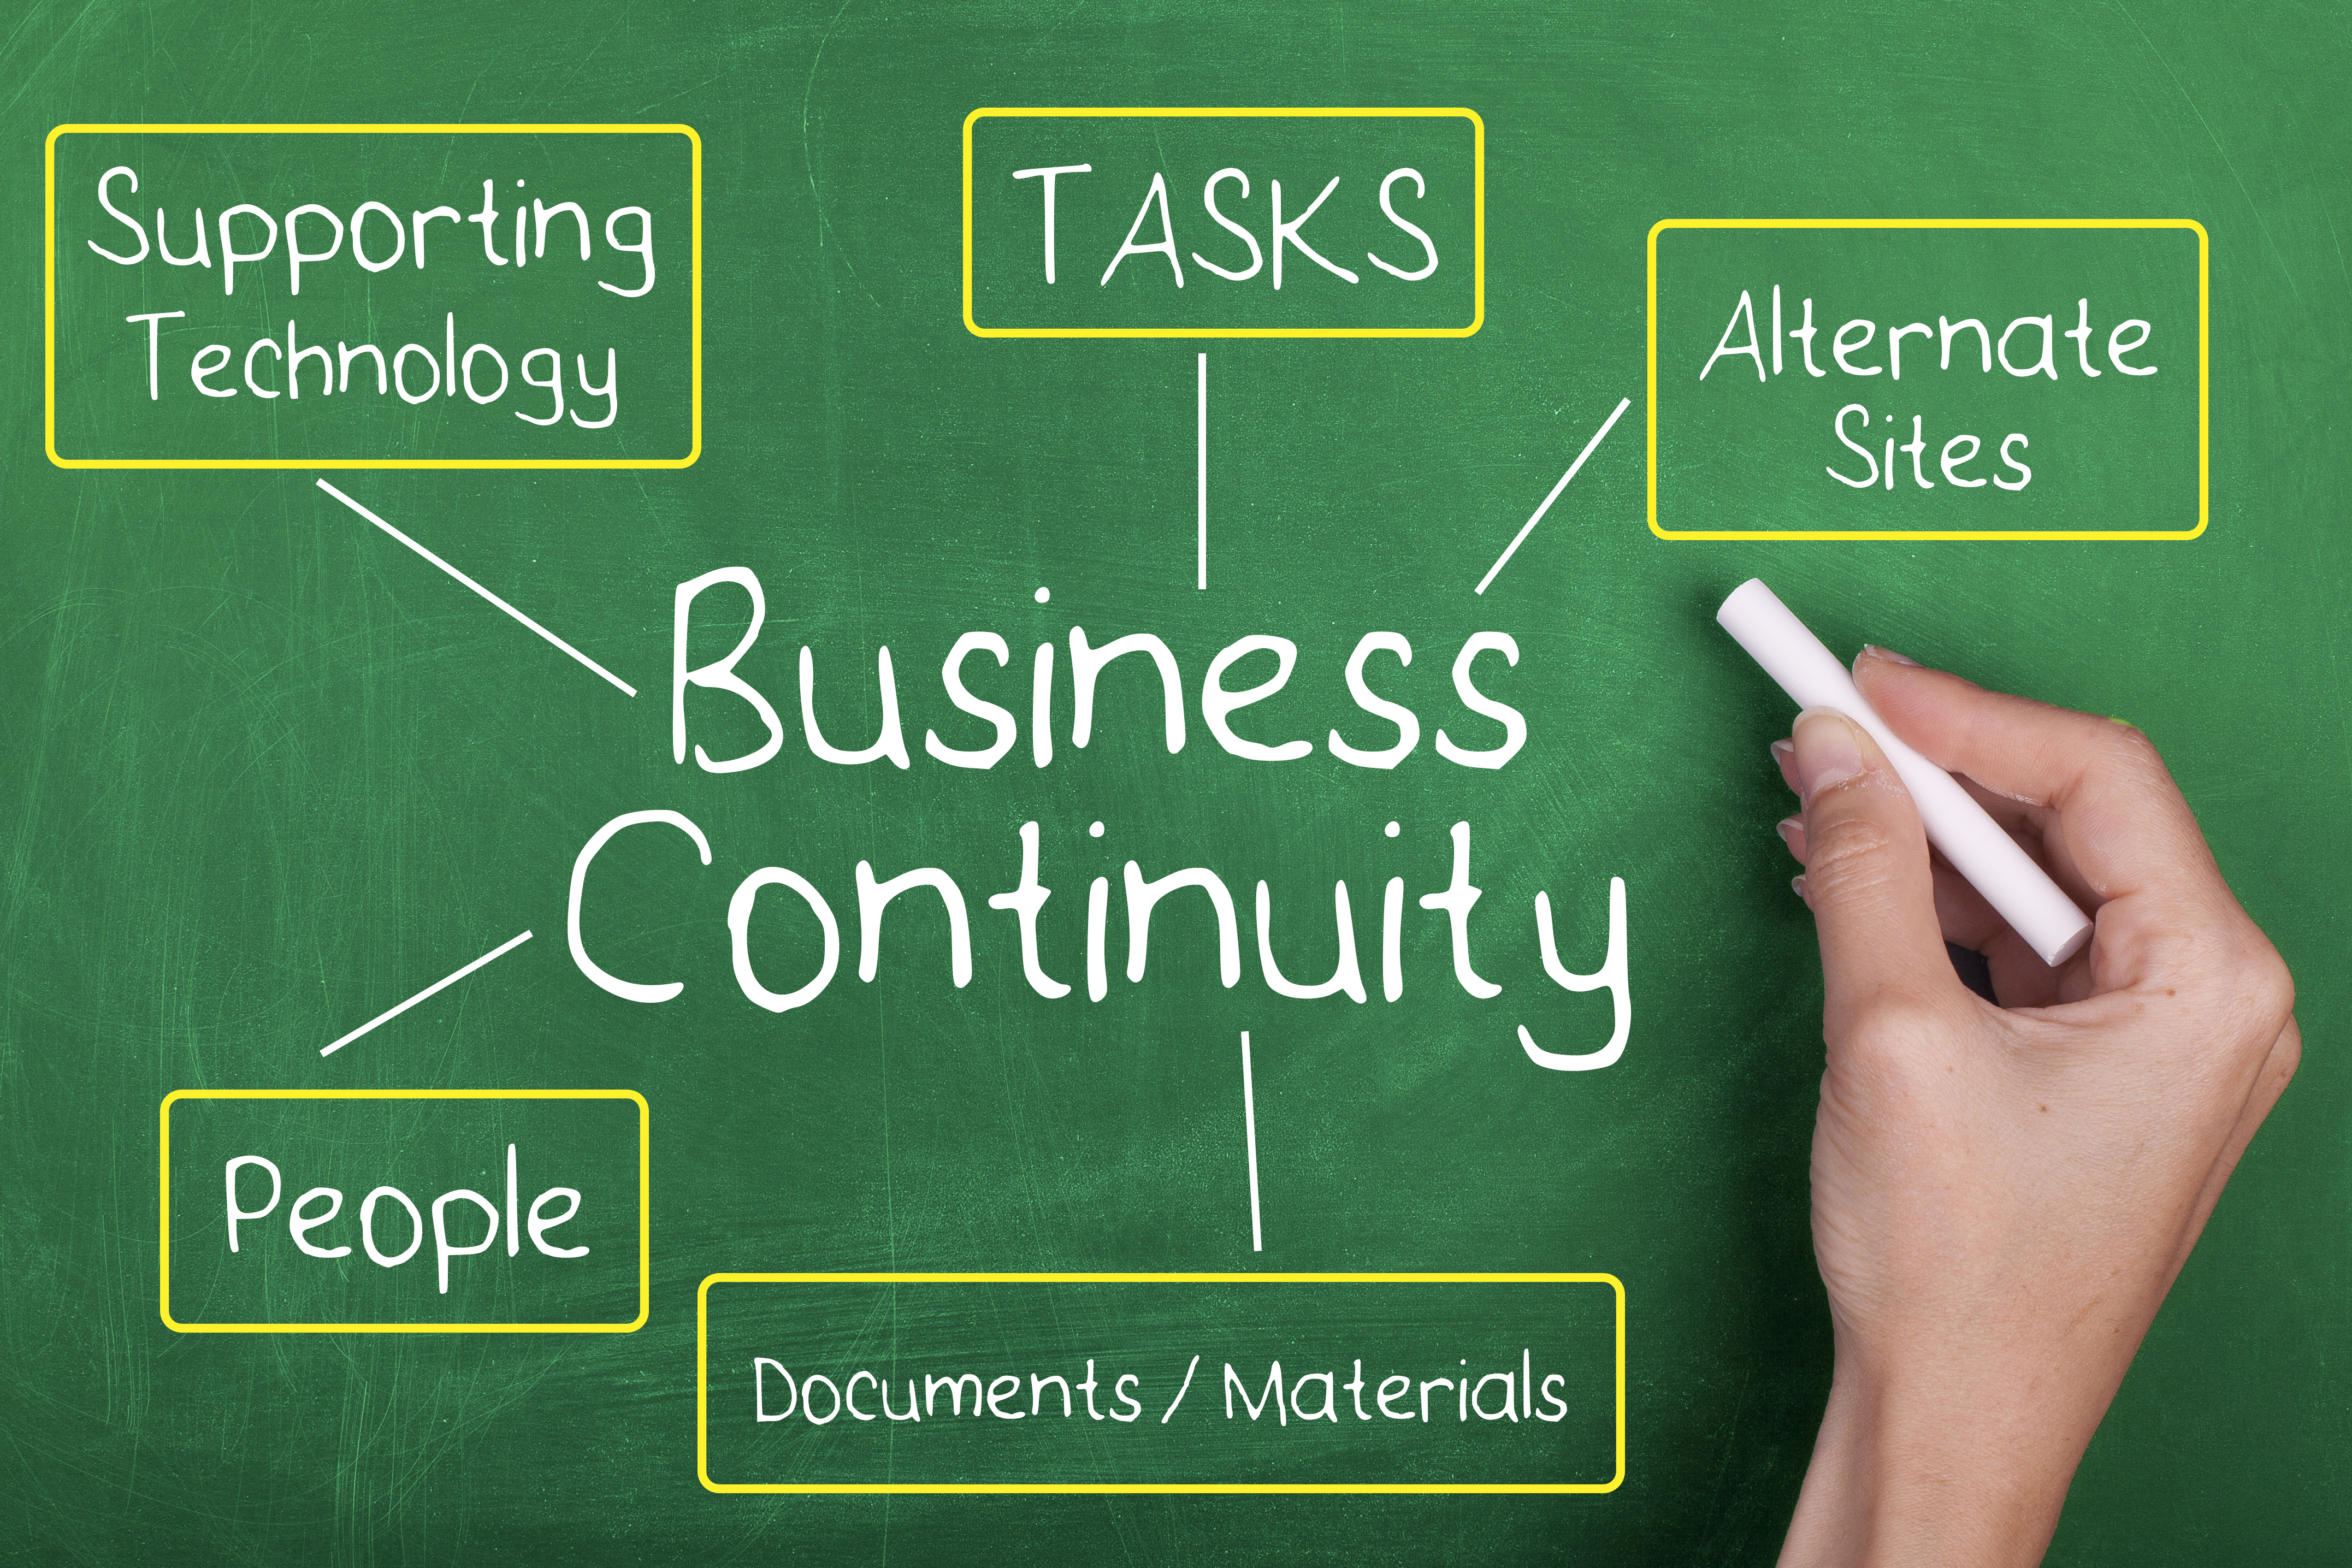 Business continuity plans not a priority for small businesses